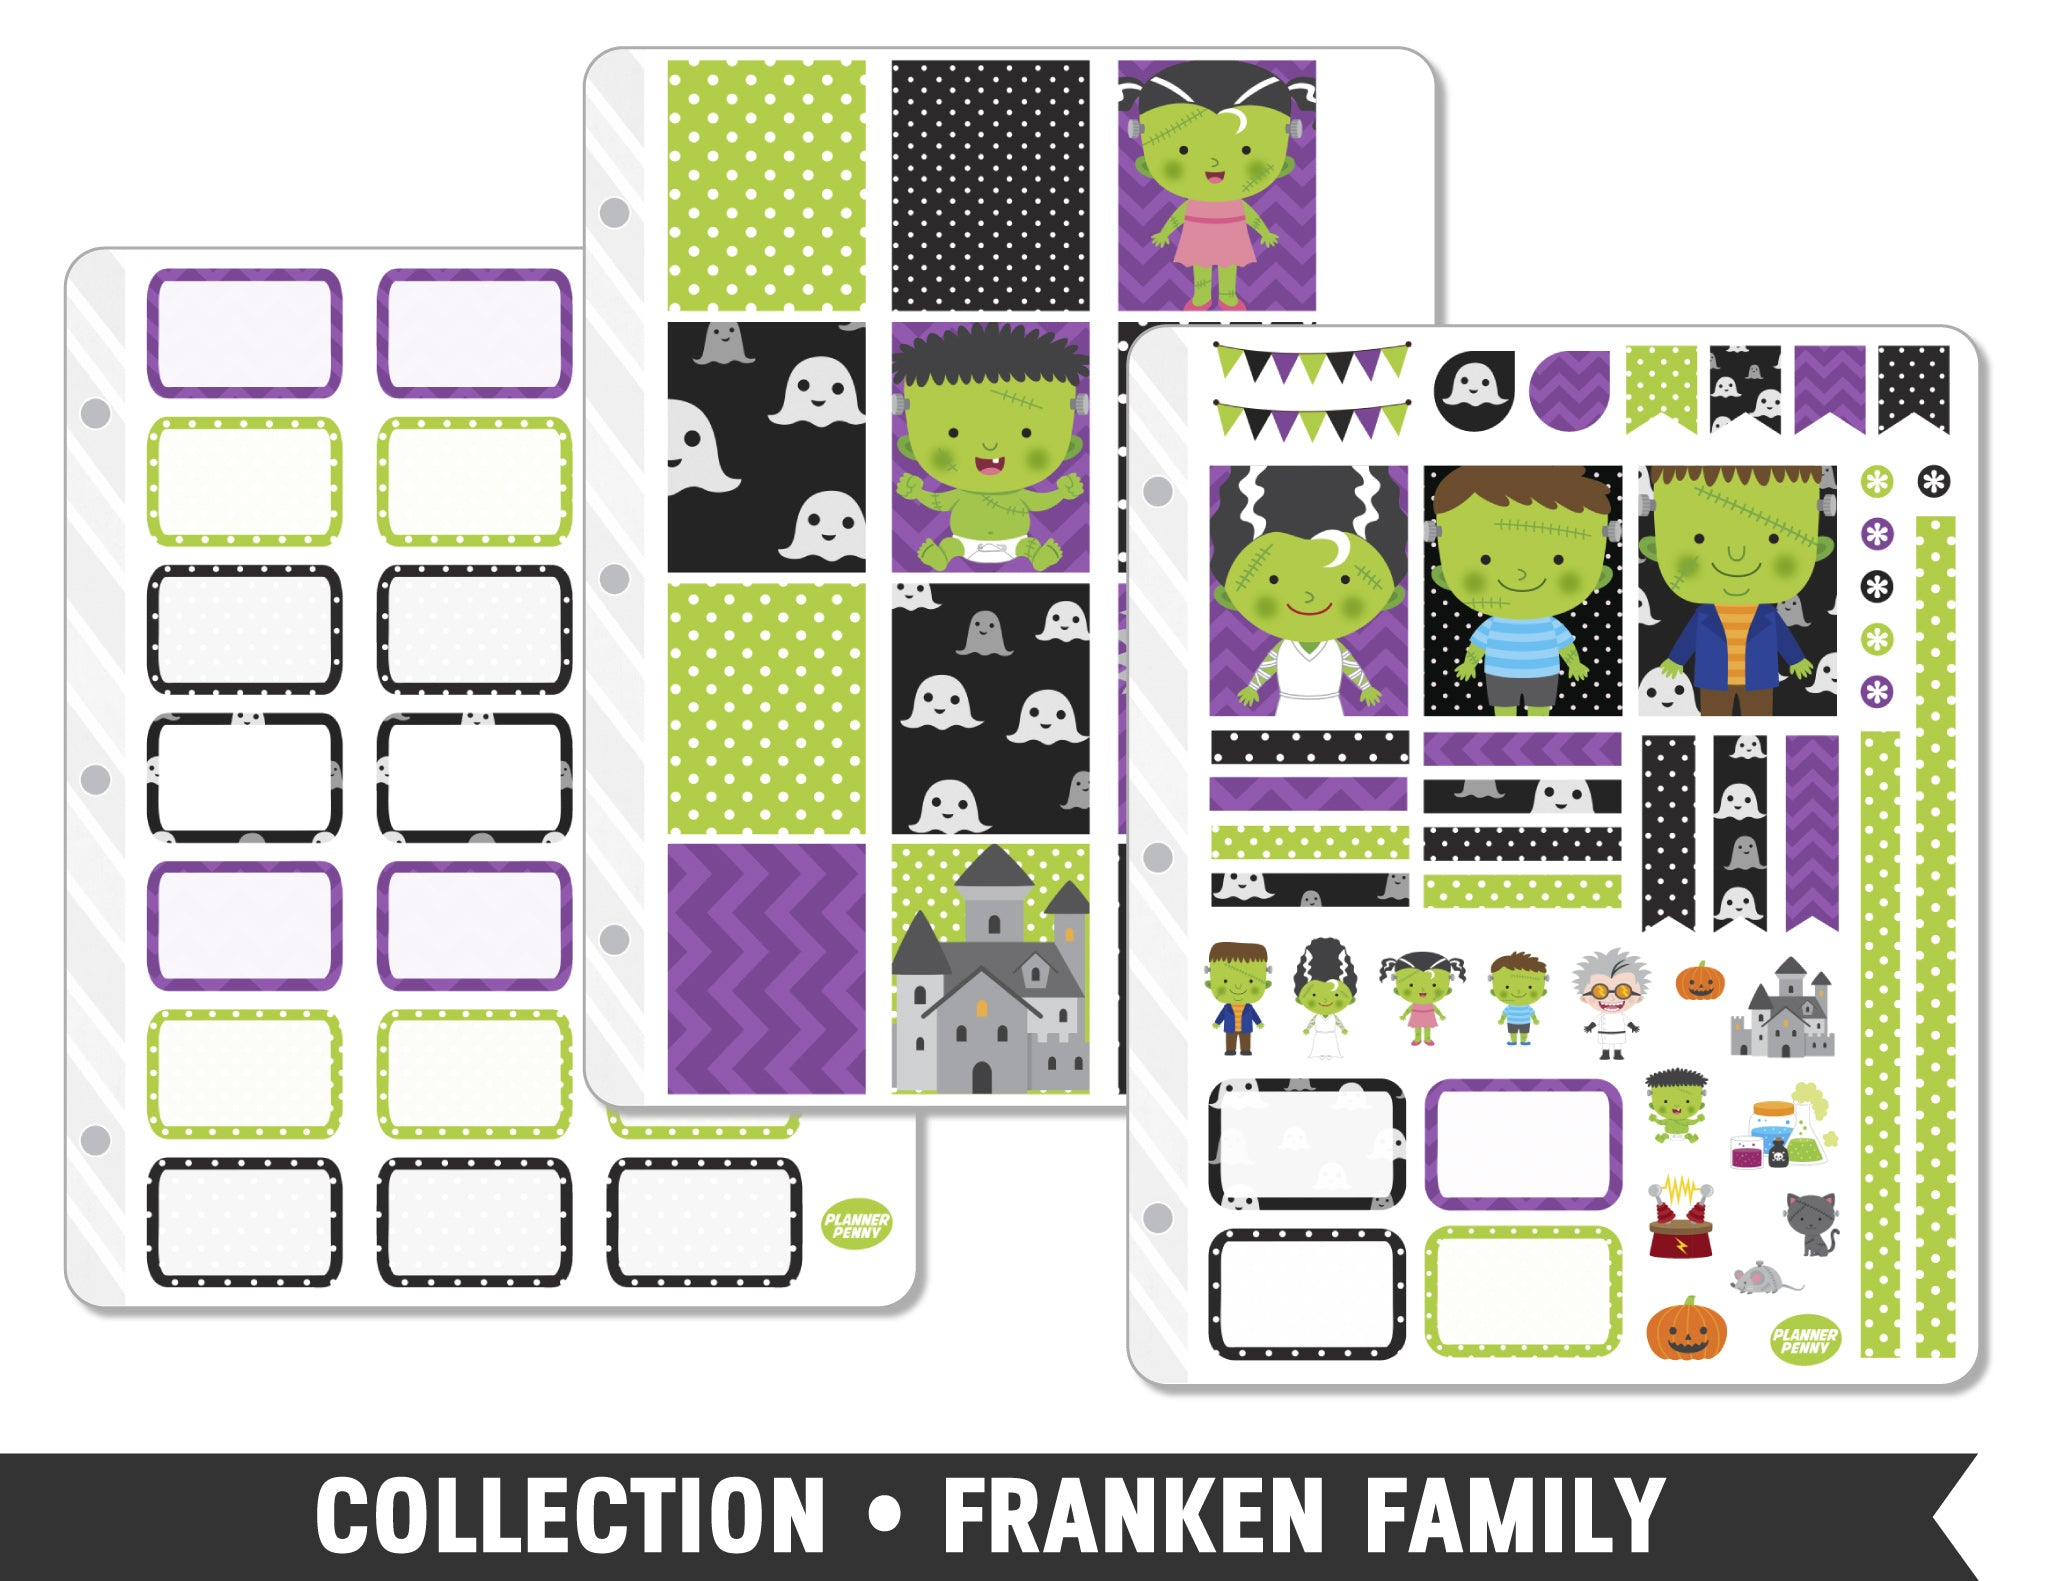 Full Collection • Franken Family Planner Stickers - Planner Penny